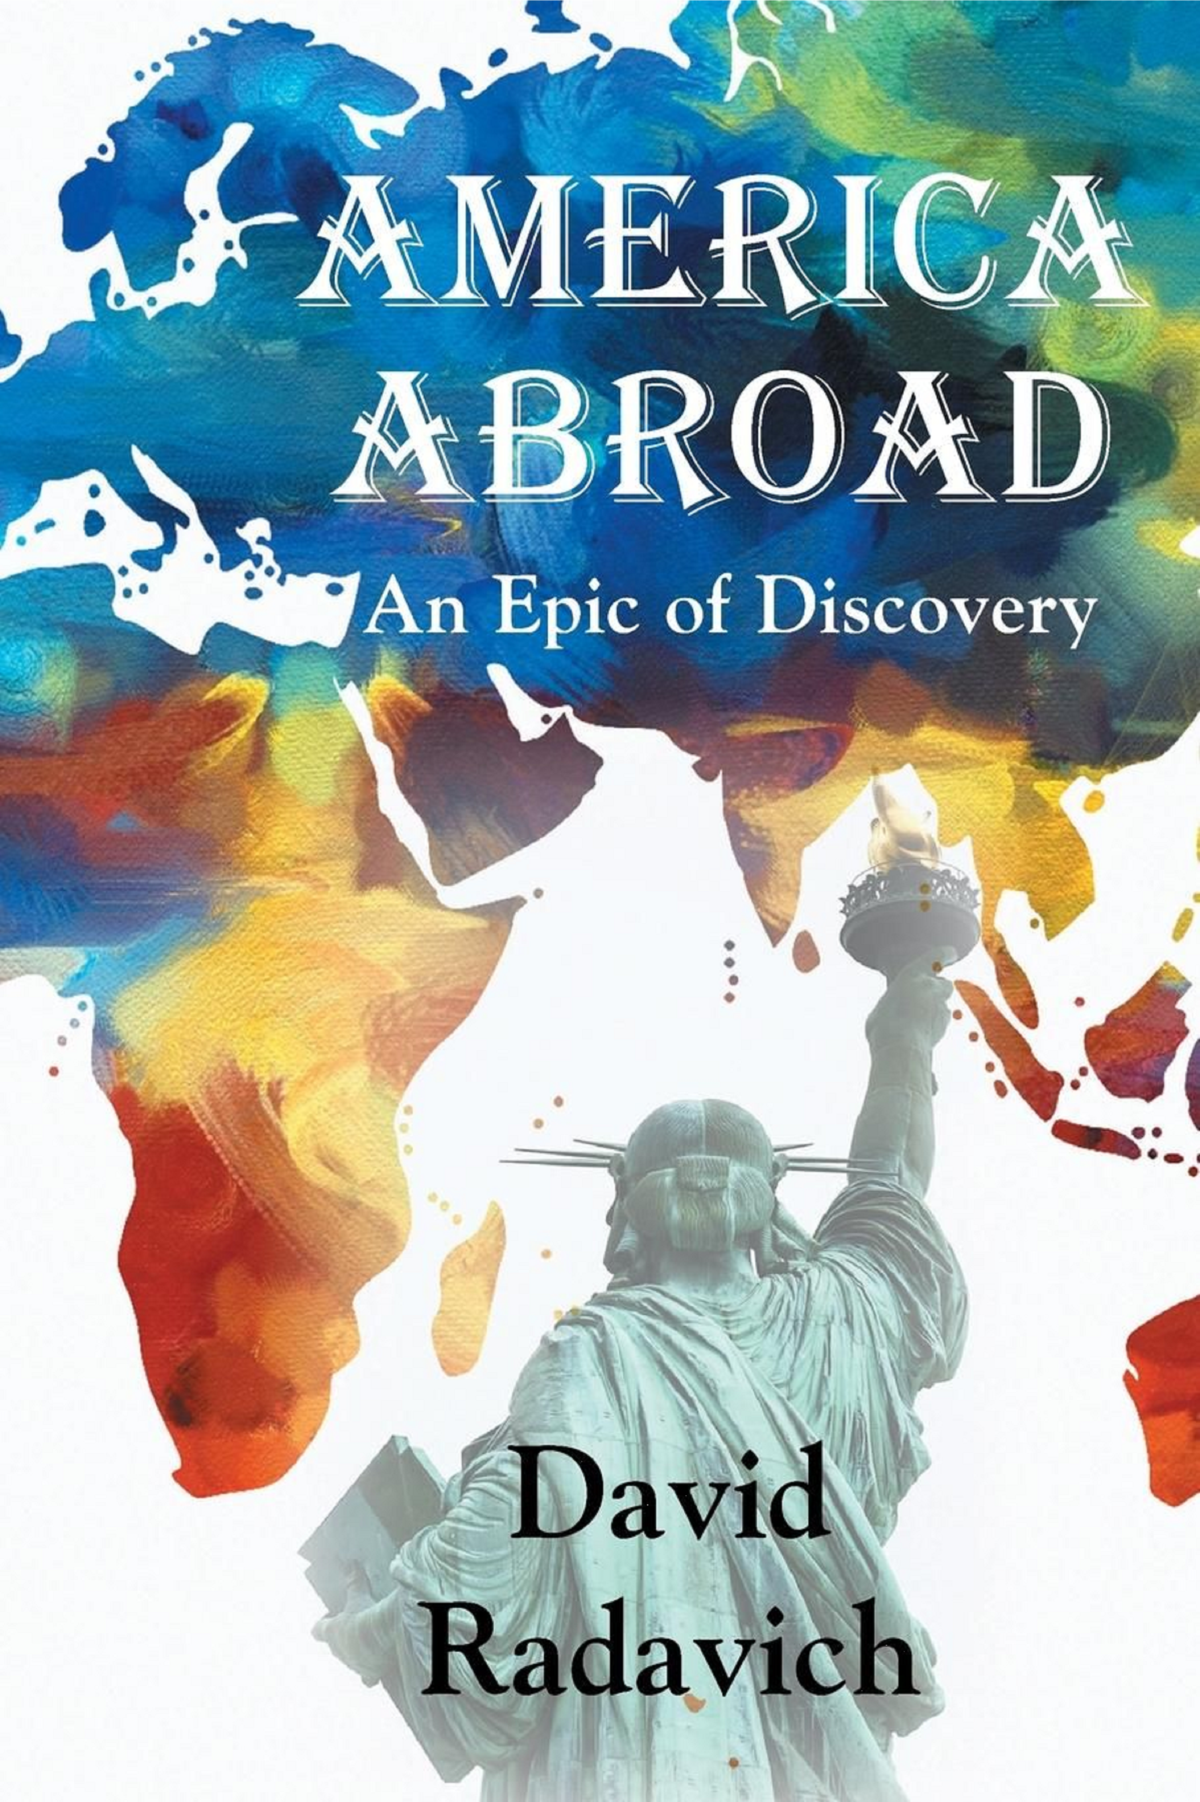 David Radavich's new book is published